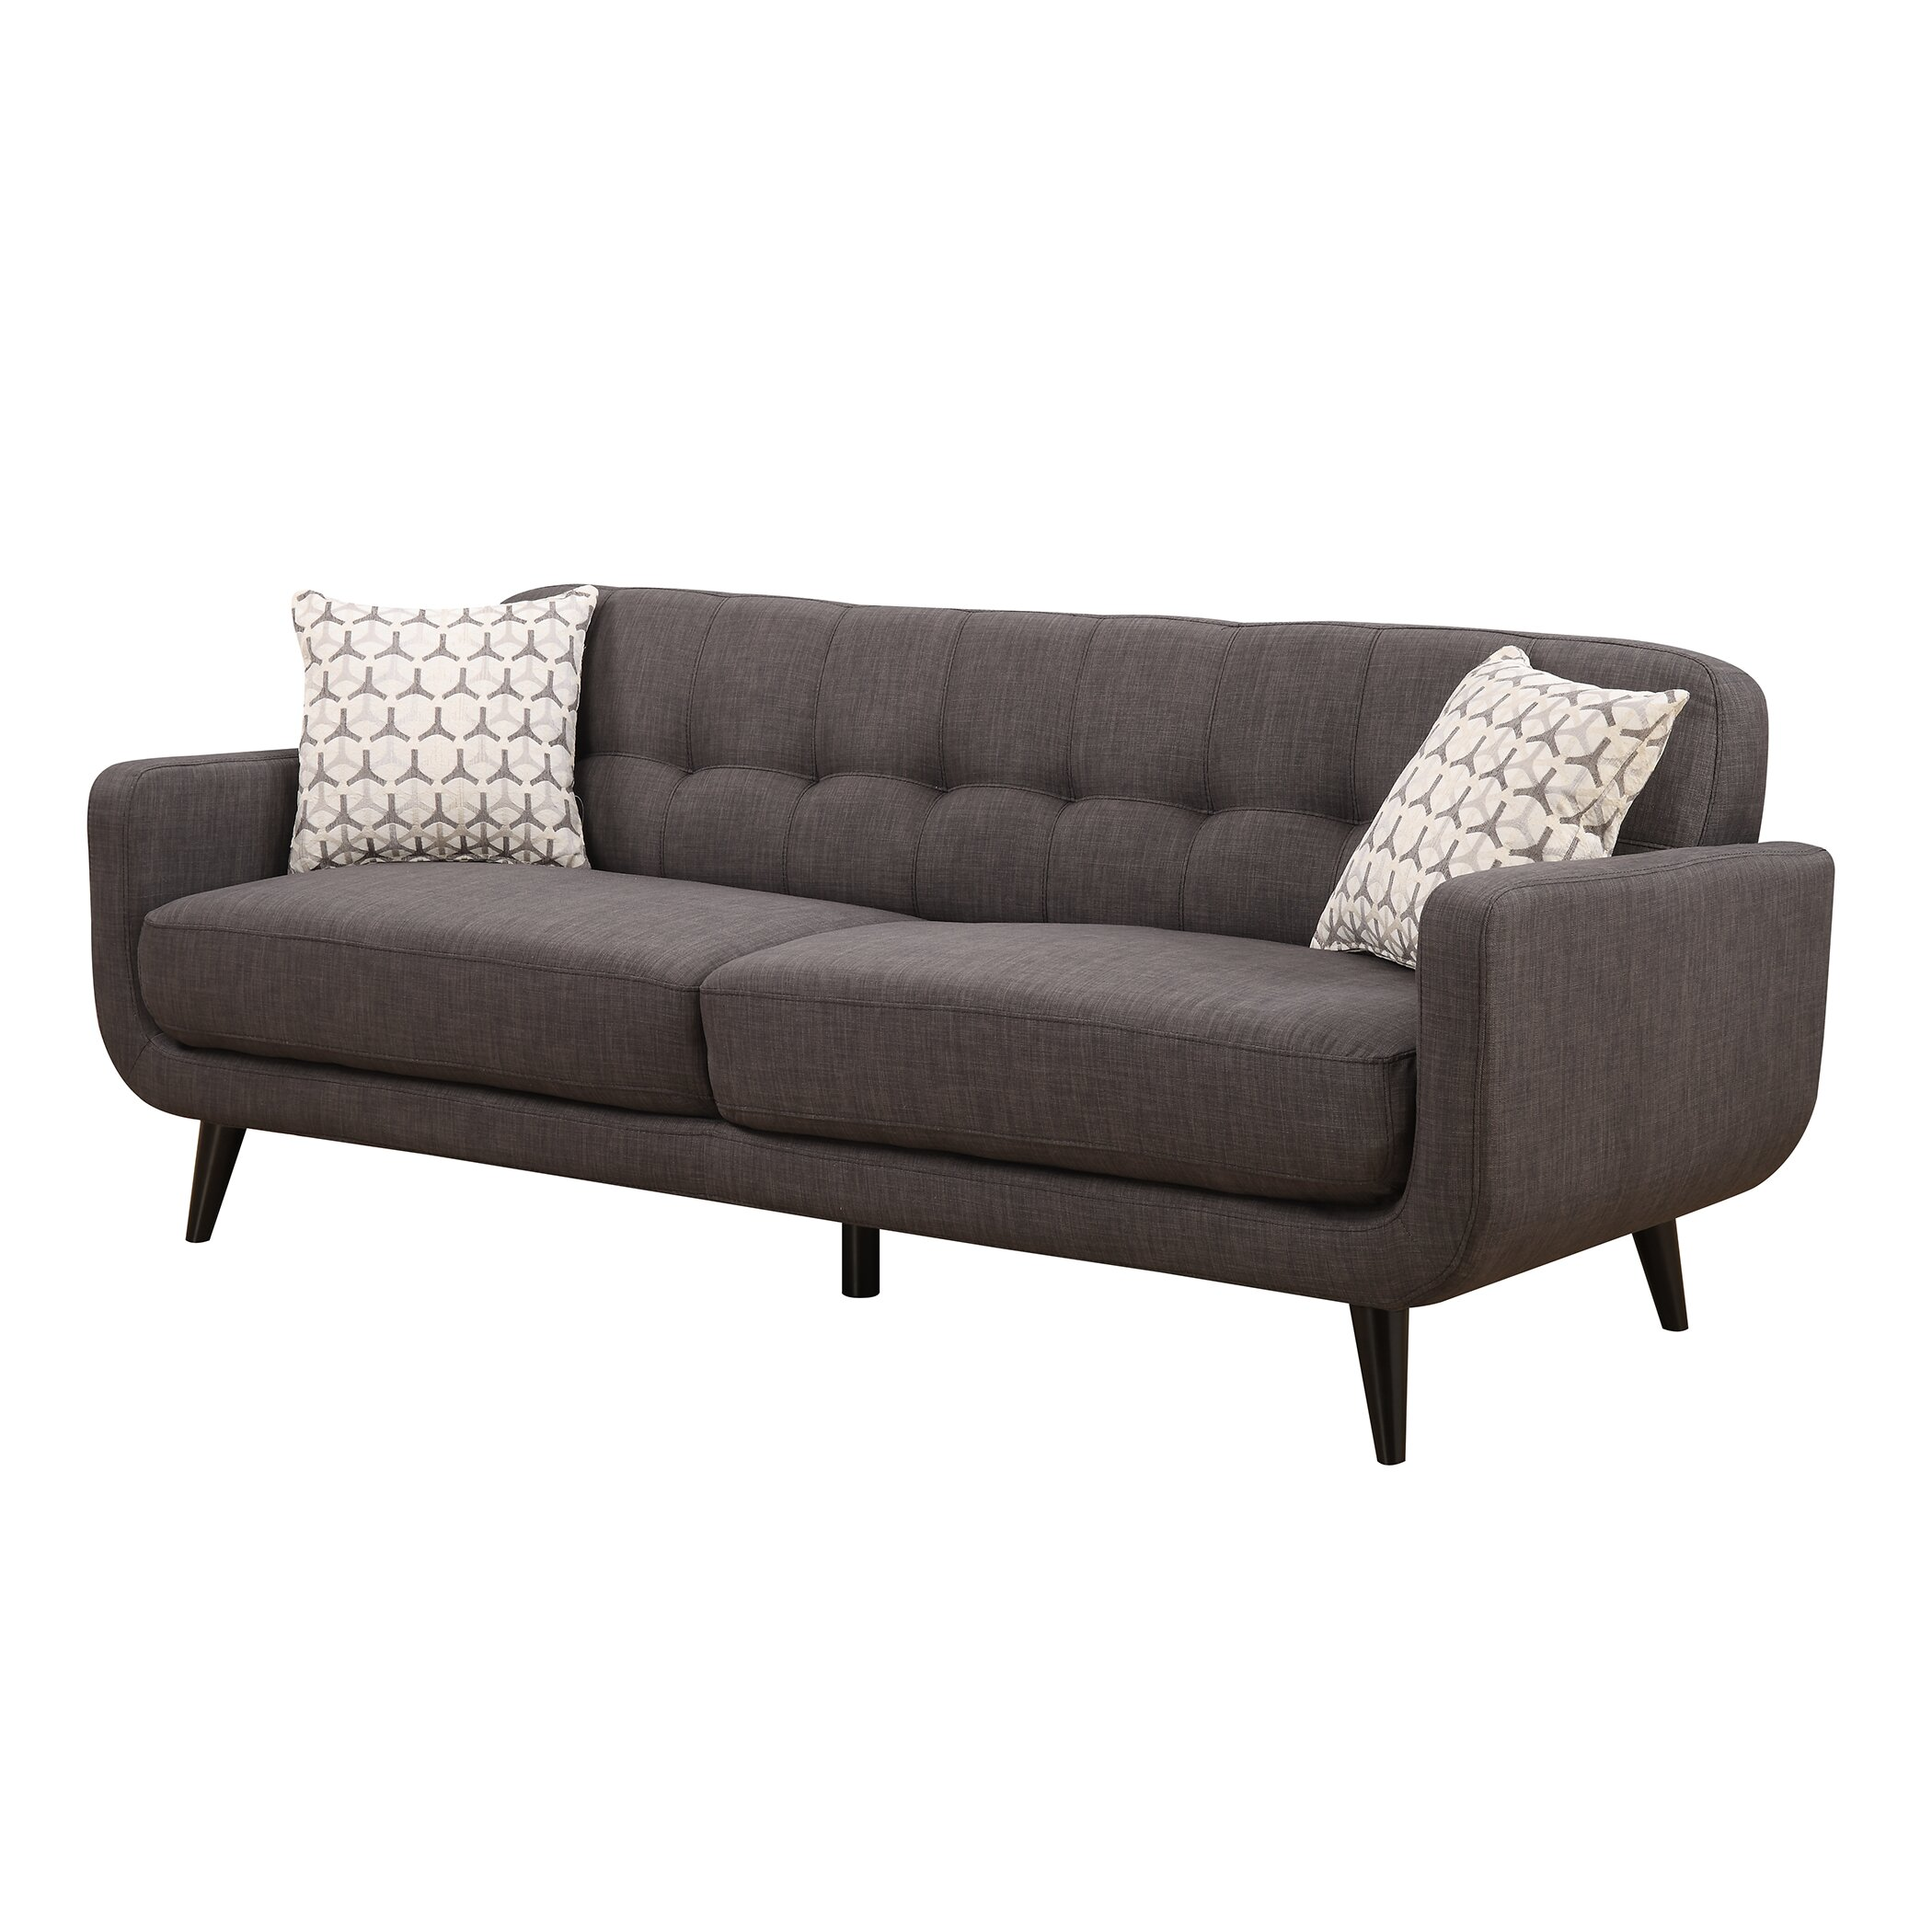 Ac pacific crystal mid century sofa for Modern sofa chair